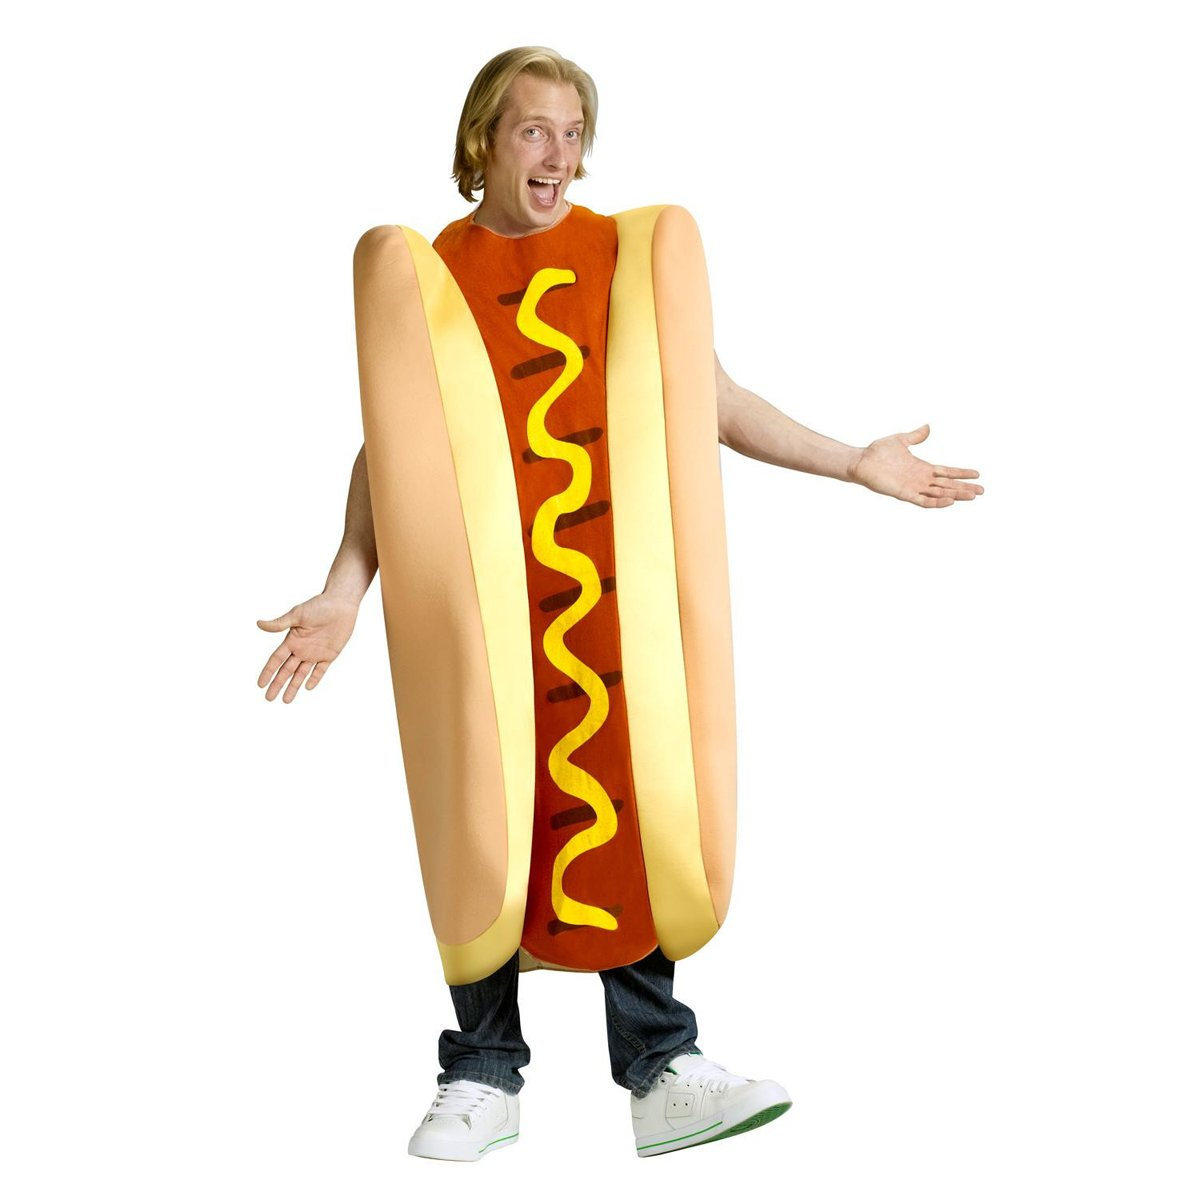 FunWorld Hot Dog, Tan/Red, One Size Costume by Fun World